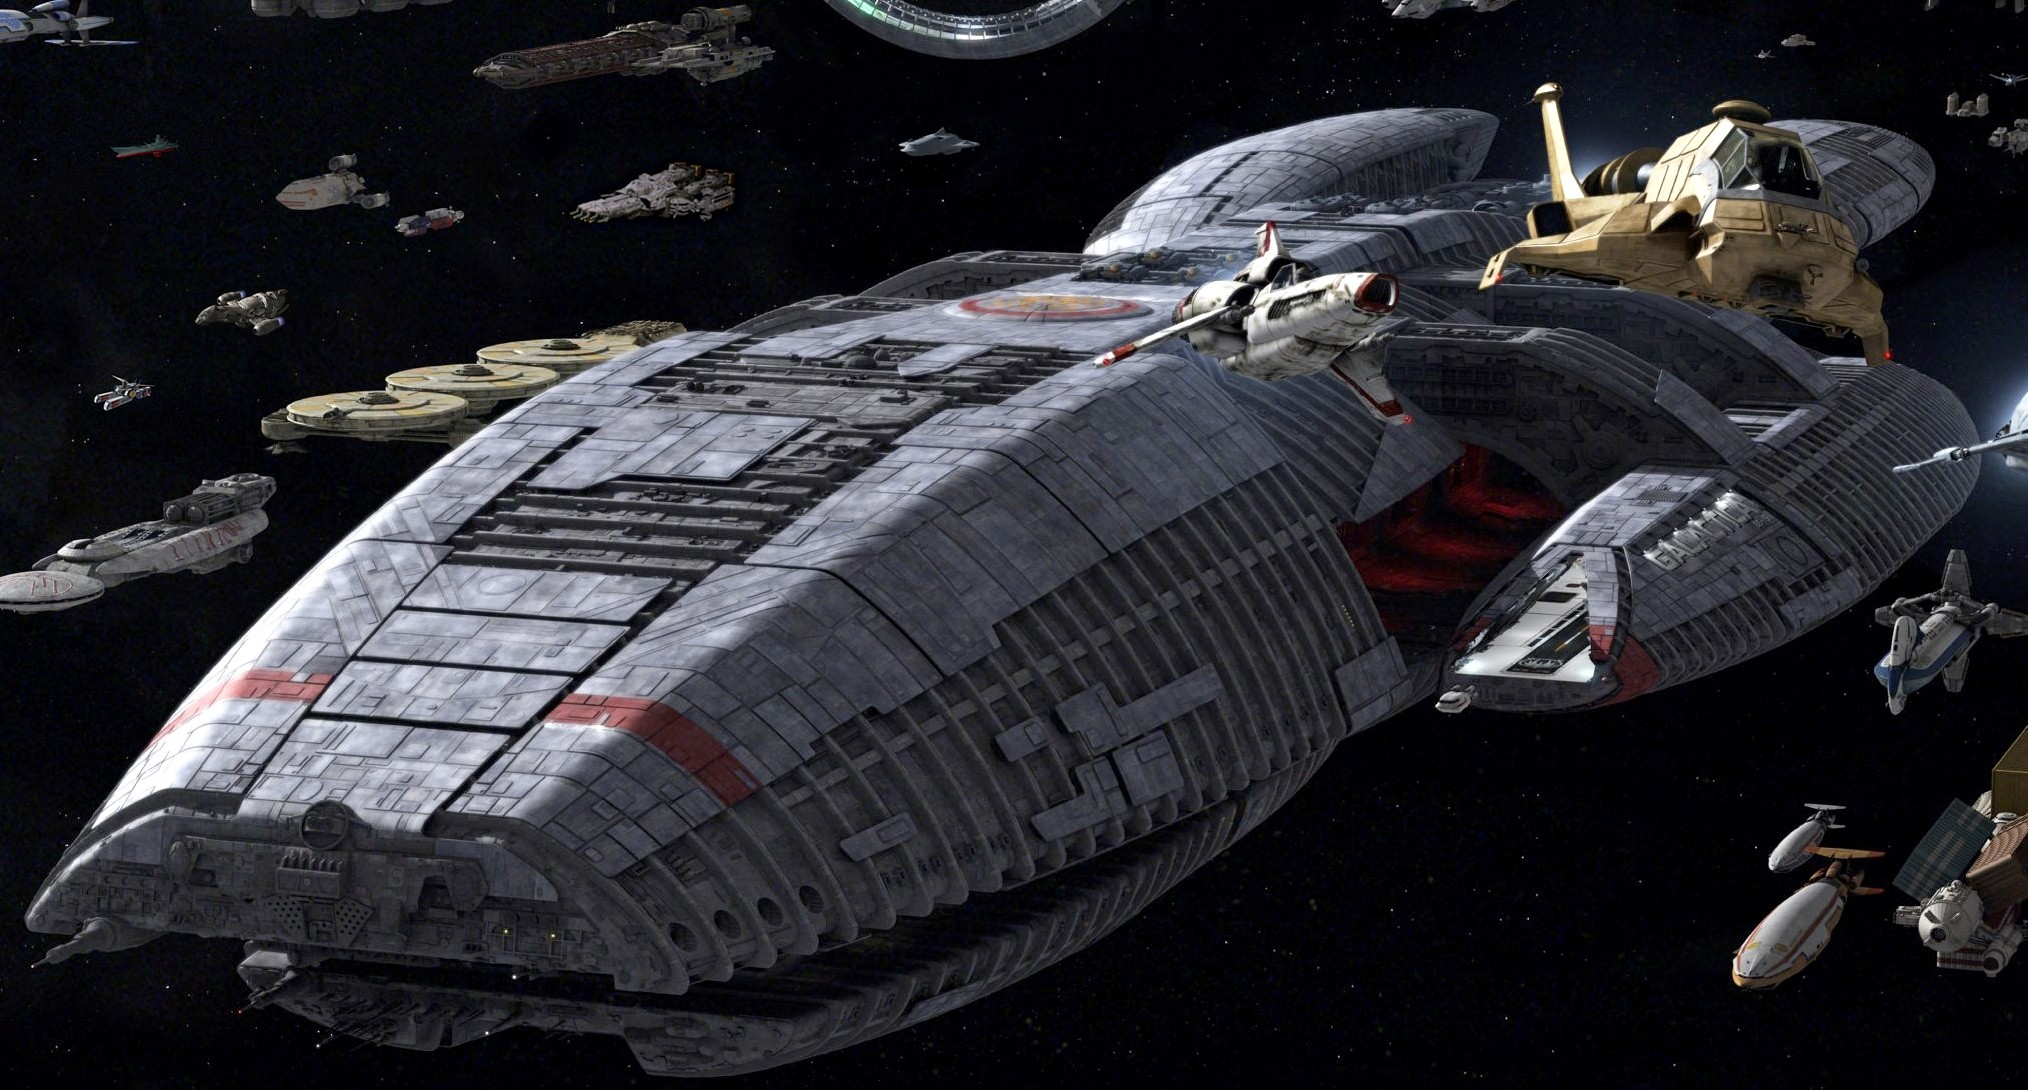 Battlestar Galactica Wallpapers And Screensavers 66 Images